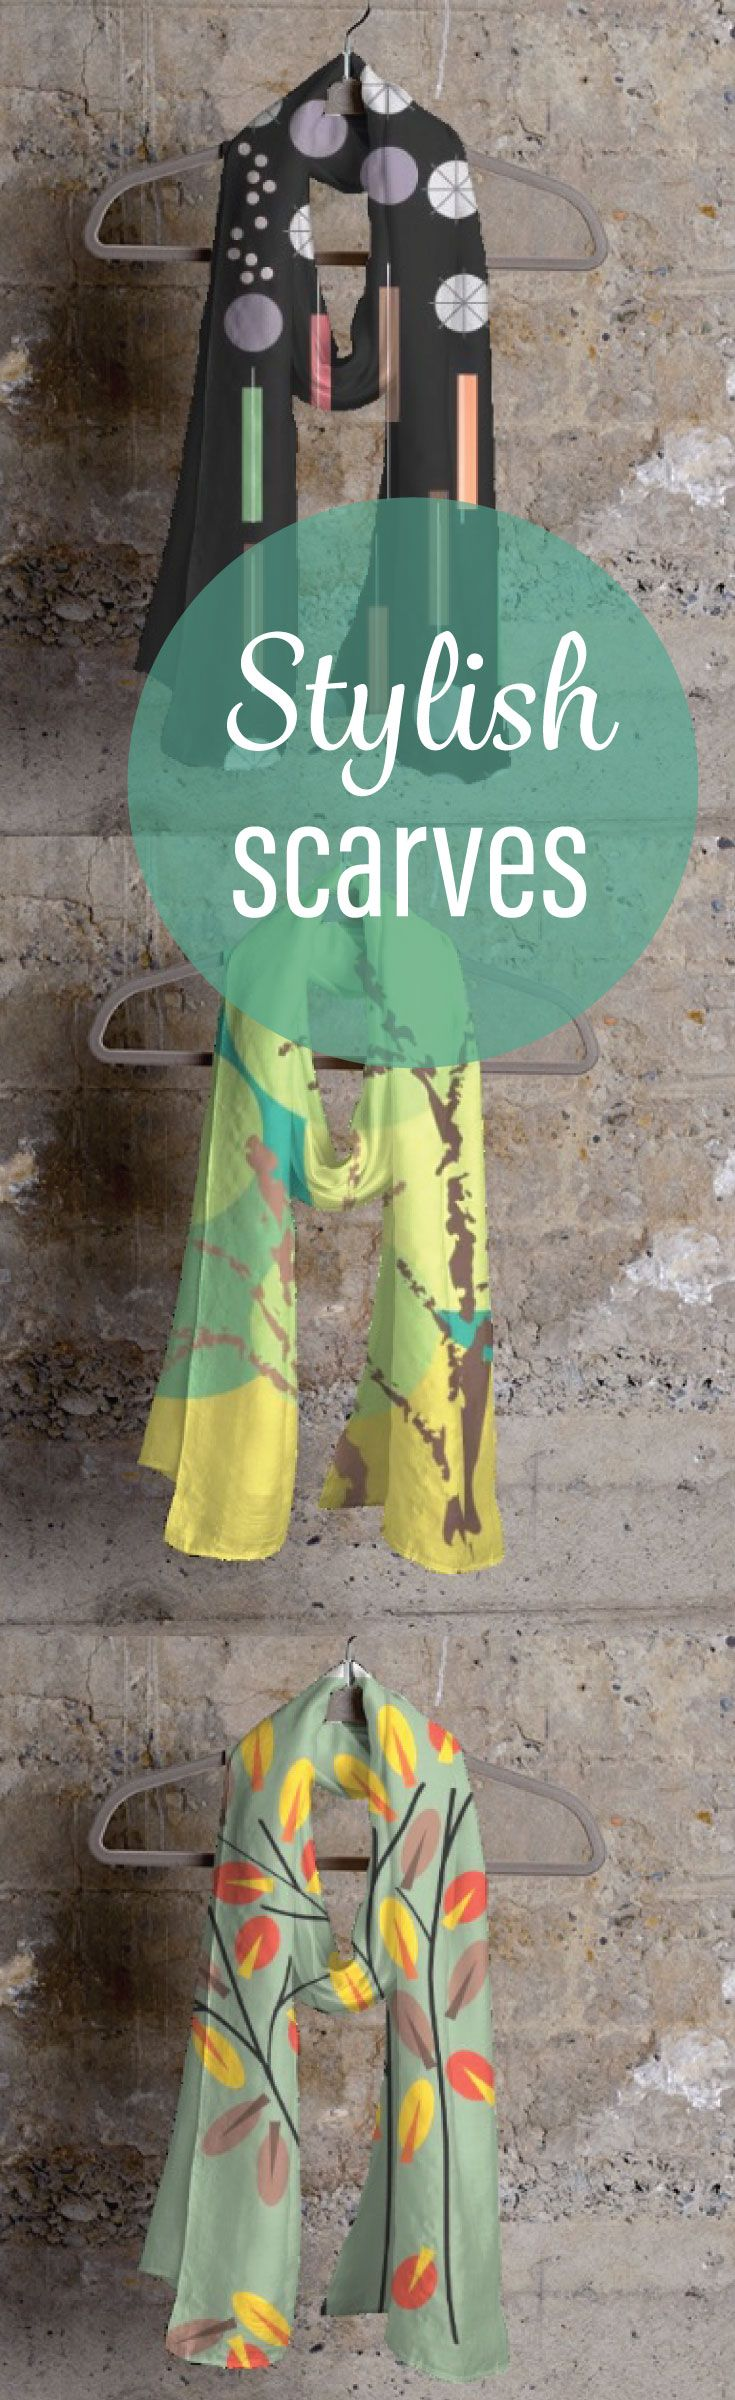 Complete your style with gorgeous scarves. Order online to accessorize your wardrobe or to give an awesome gift. Click the photo to explore my signature collection.